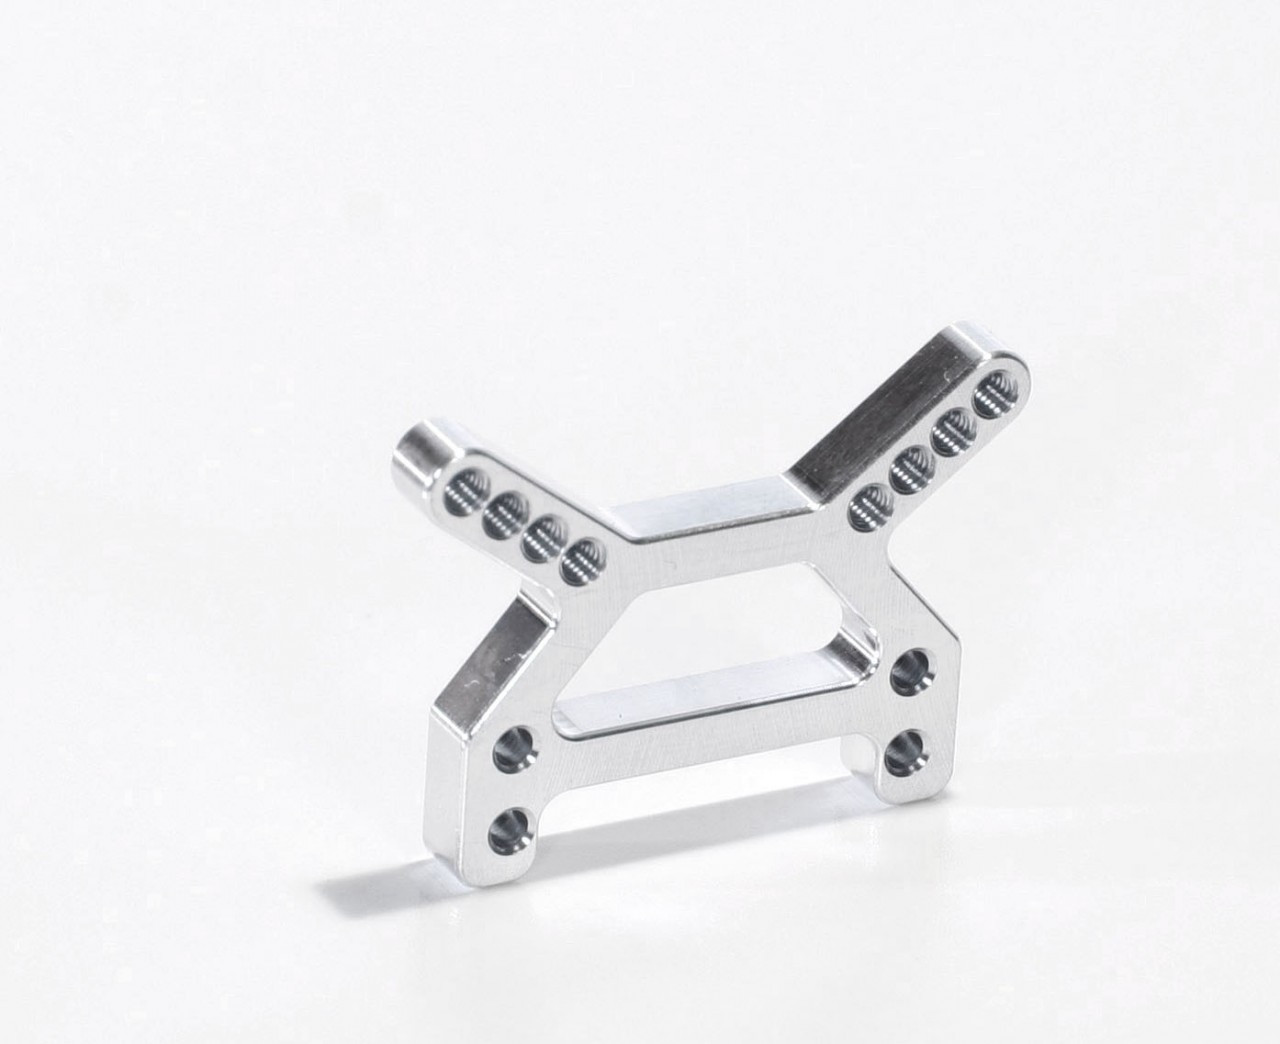 Aluminum front shock tower for the Associated RC18 Buggy.  Direct from Fullforce RC.  Also fits the new Reflex buggy.